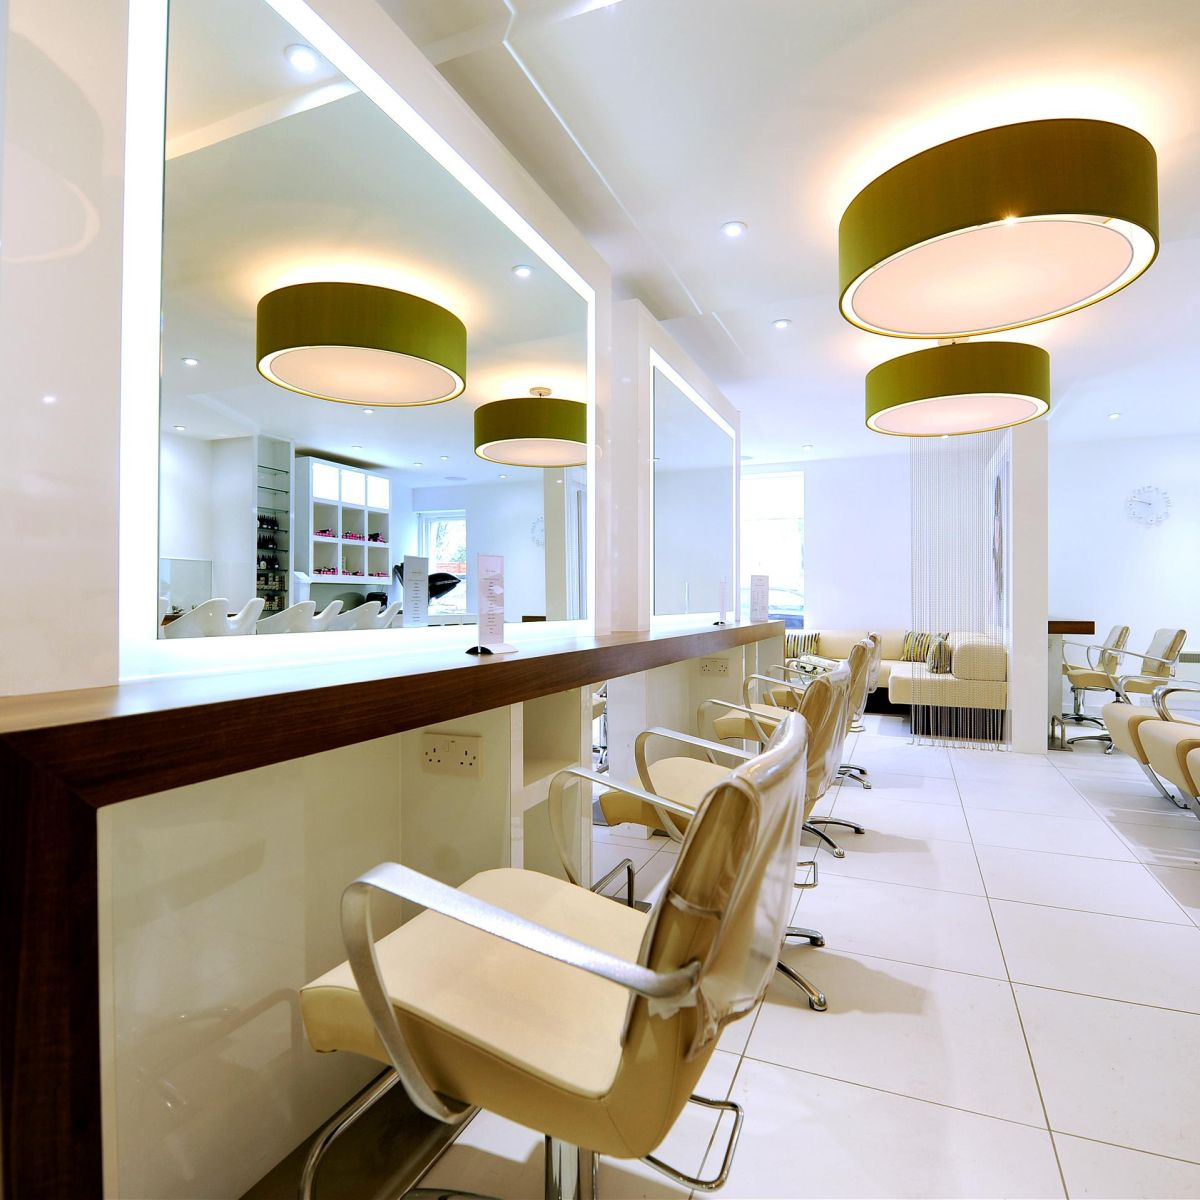 Nelson mobilier hair salon furniture made in france for A beautiful you salon